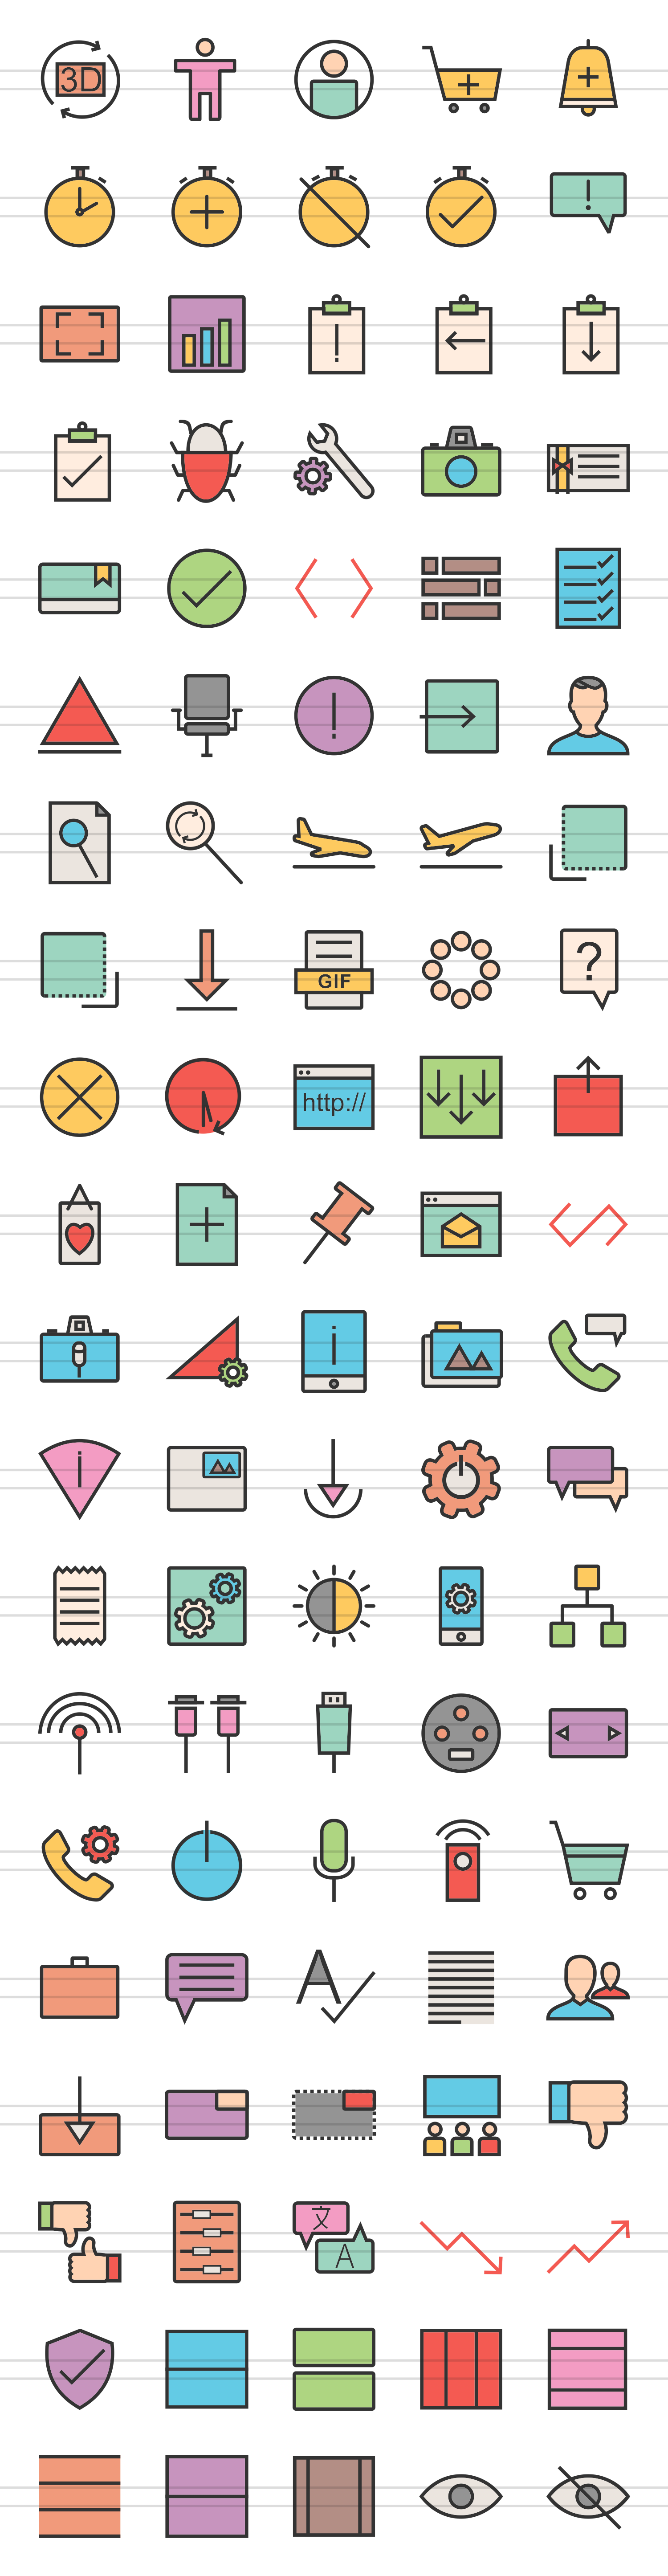 100 Material Design Filled Line Icons example image 2